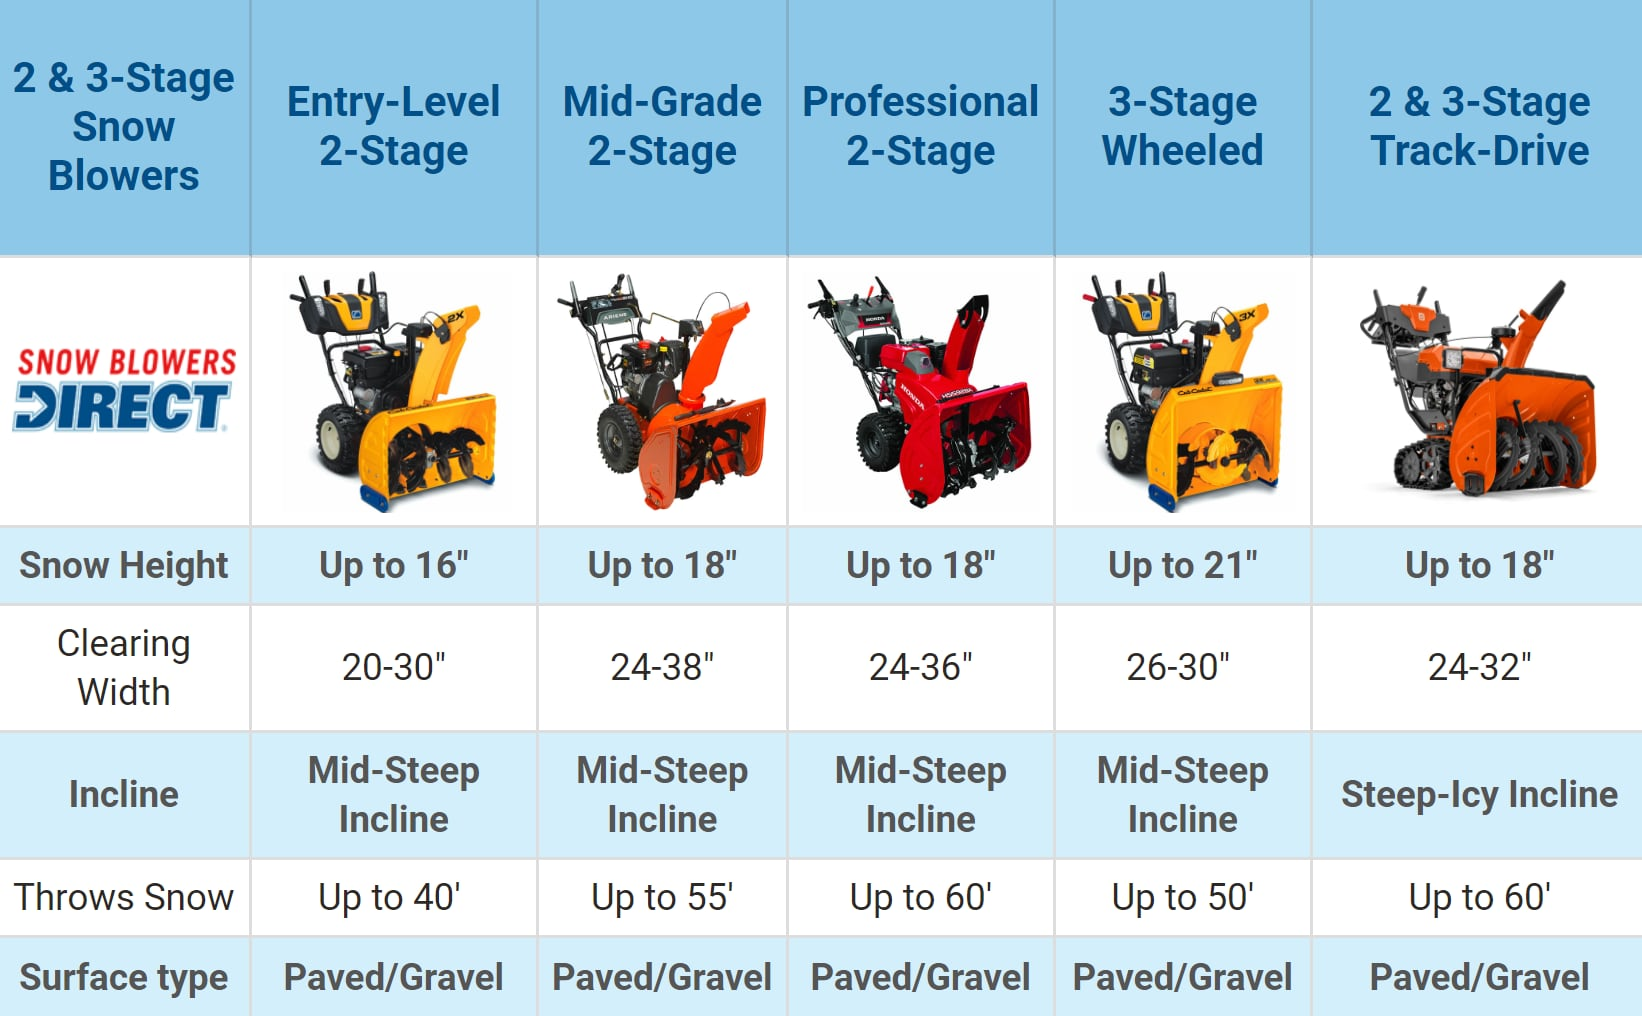 Two-Stage and Three-Stage Snowblower Comparison Chart